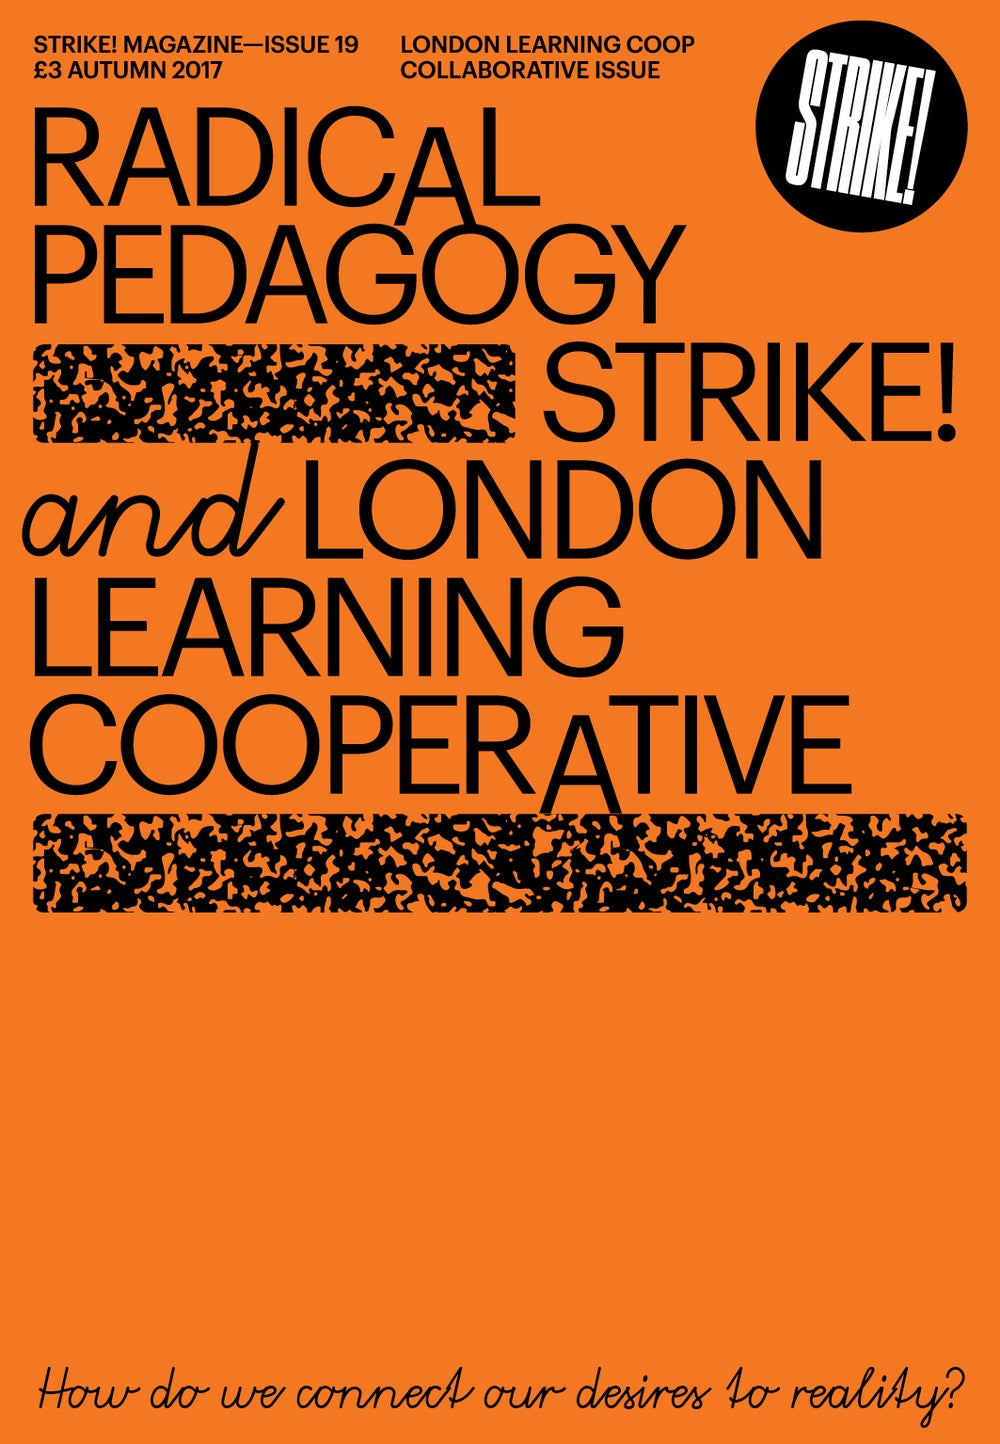 Image of STRIKE! Issue 19 AUTUMN 2017